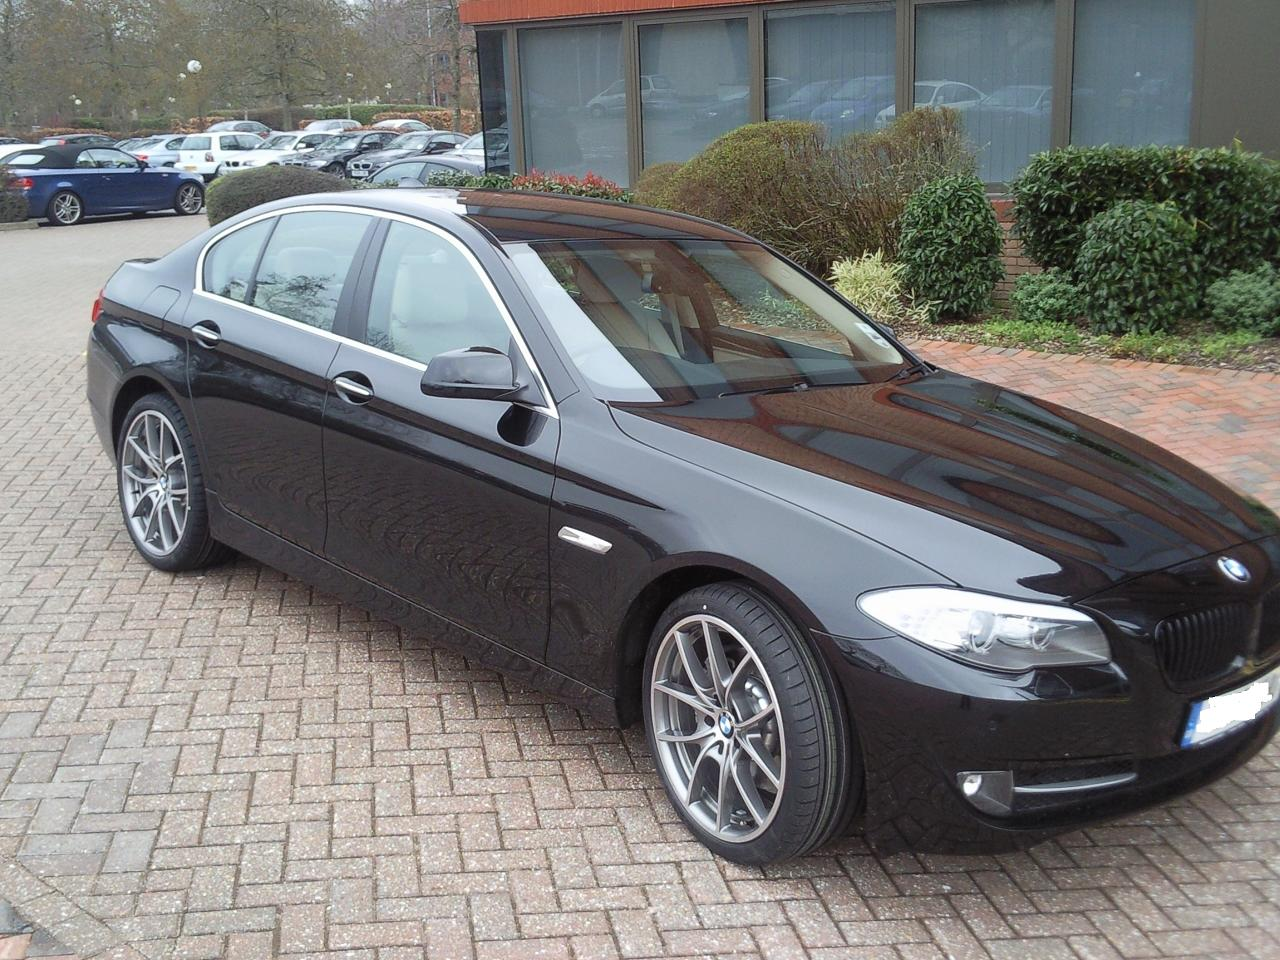 New 5 Series Arrived With V Spoke Style 328 Alloy Wheels